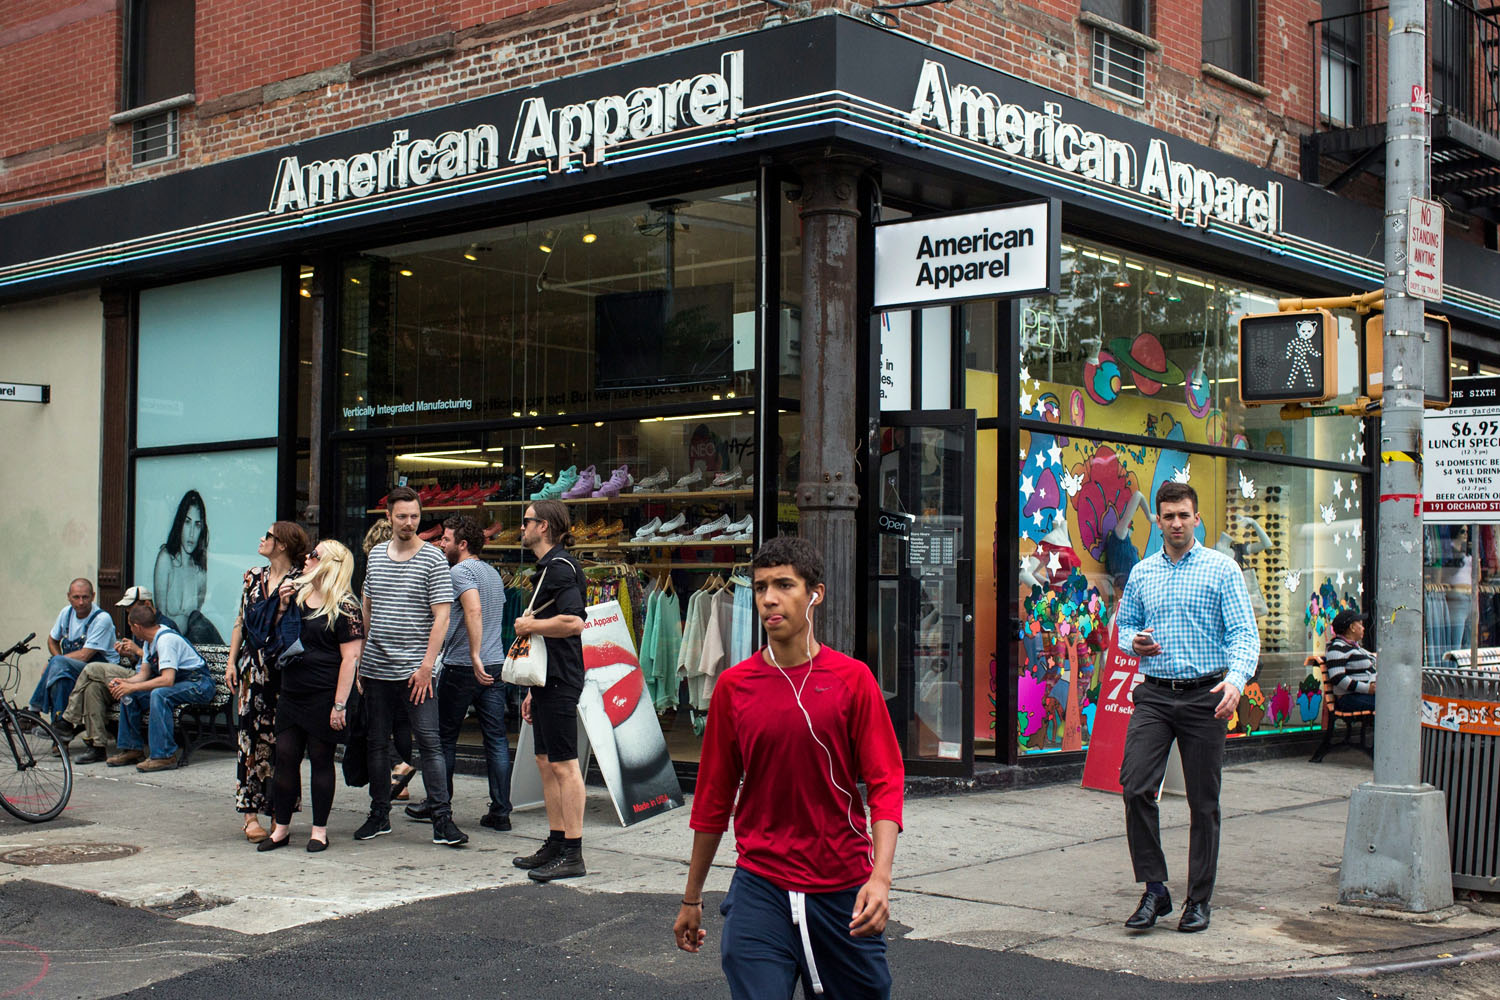 American Apparel Prepare for Post-Bankruptcy